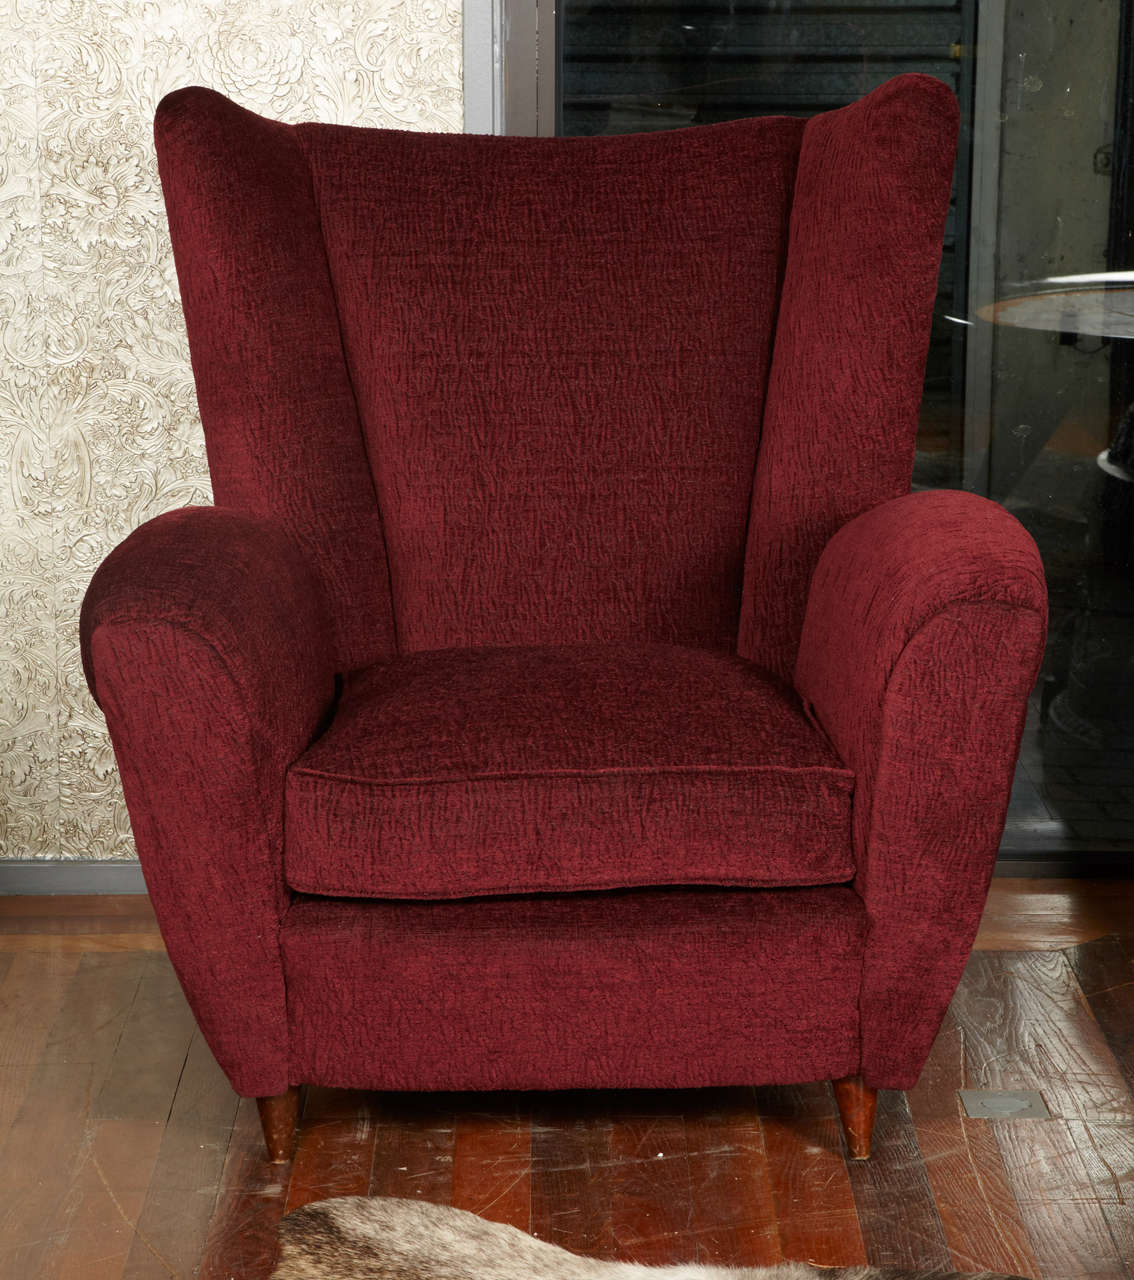 Pair of entirely restored and red fabric covered armchairs, wood feet